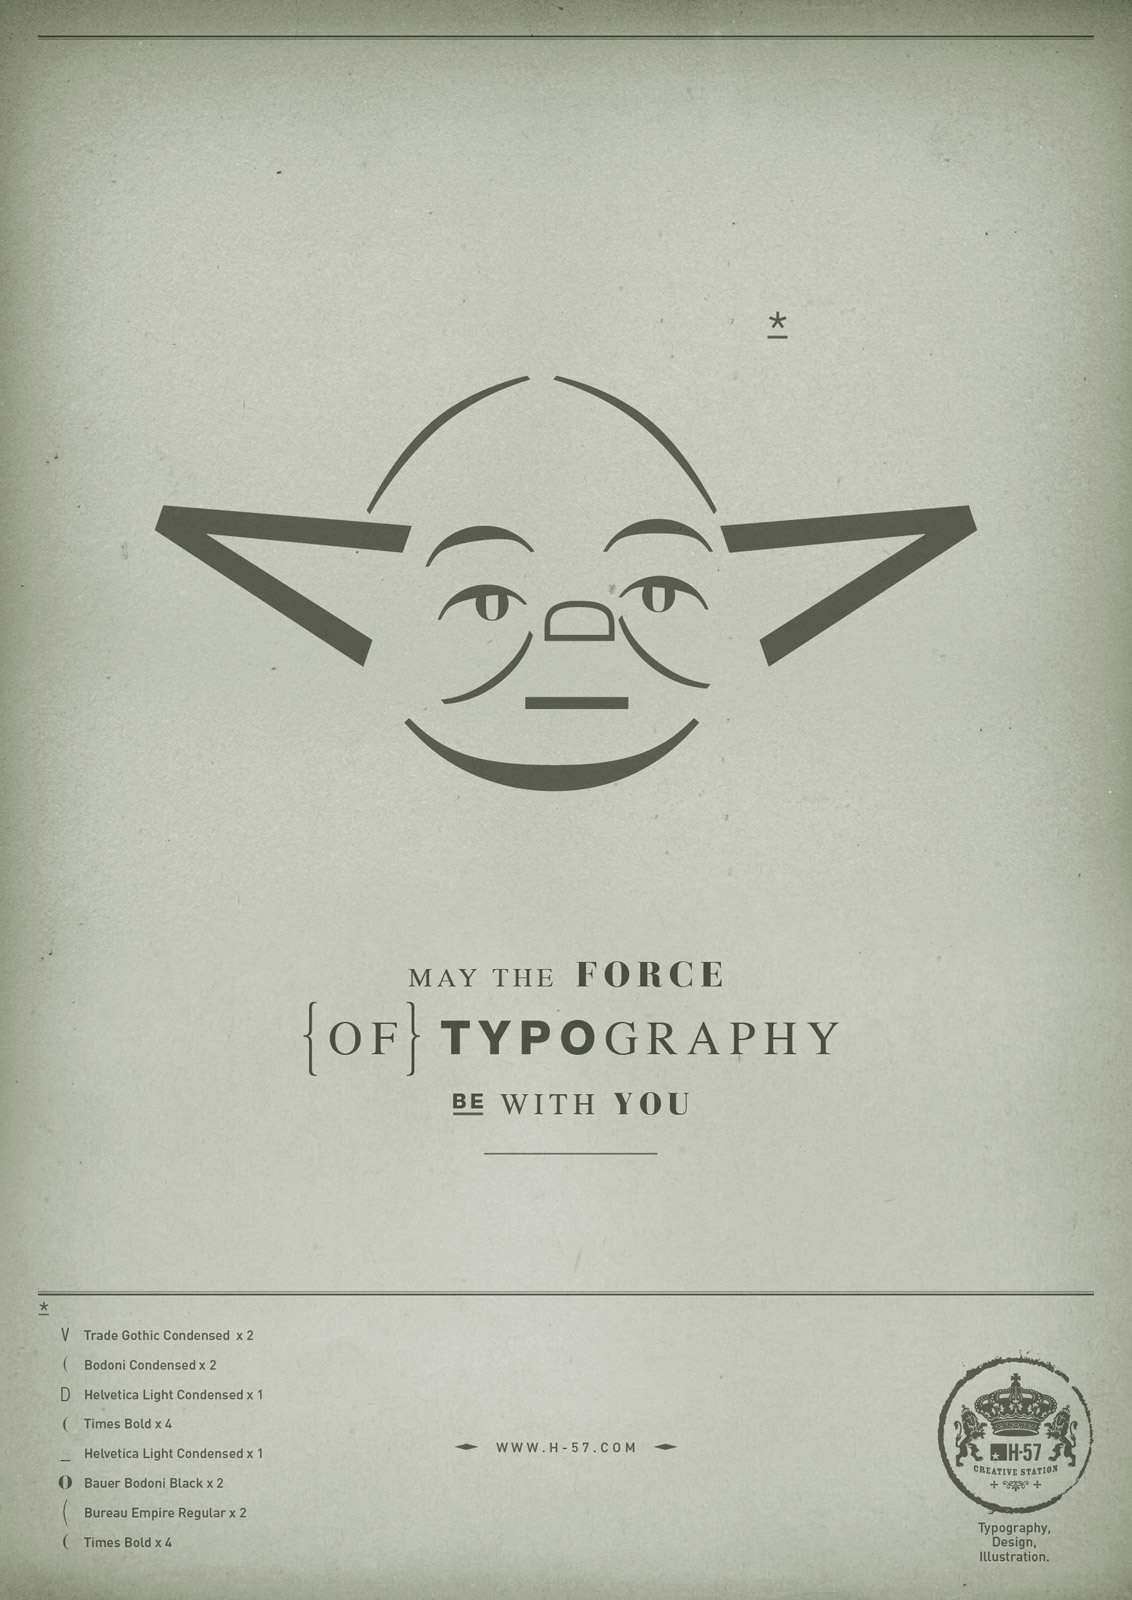 may-the-force-of-typography-be-with-you-storm-yoda